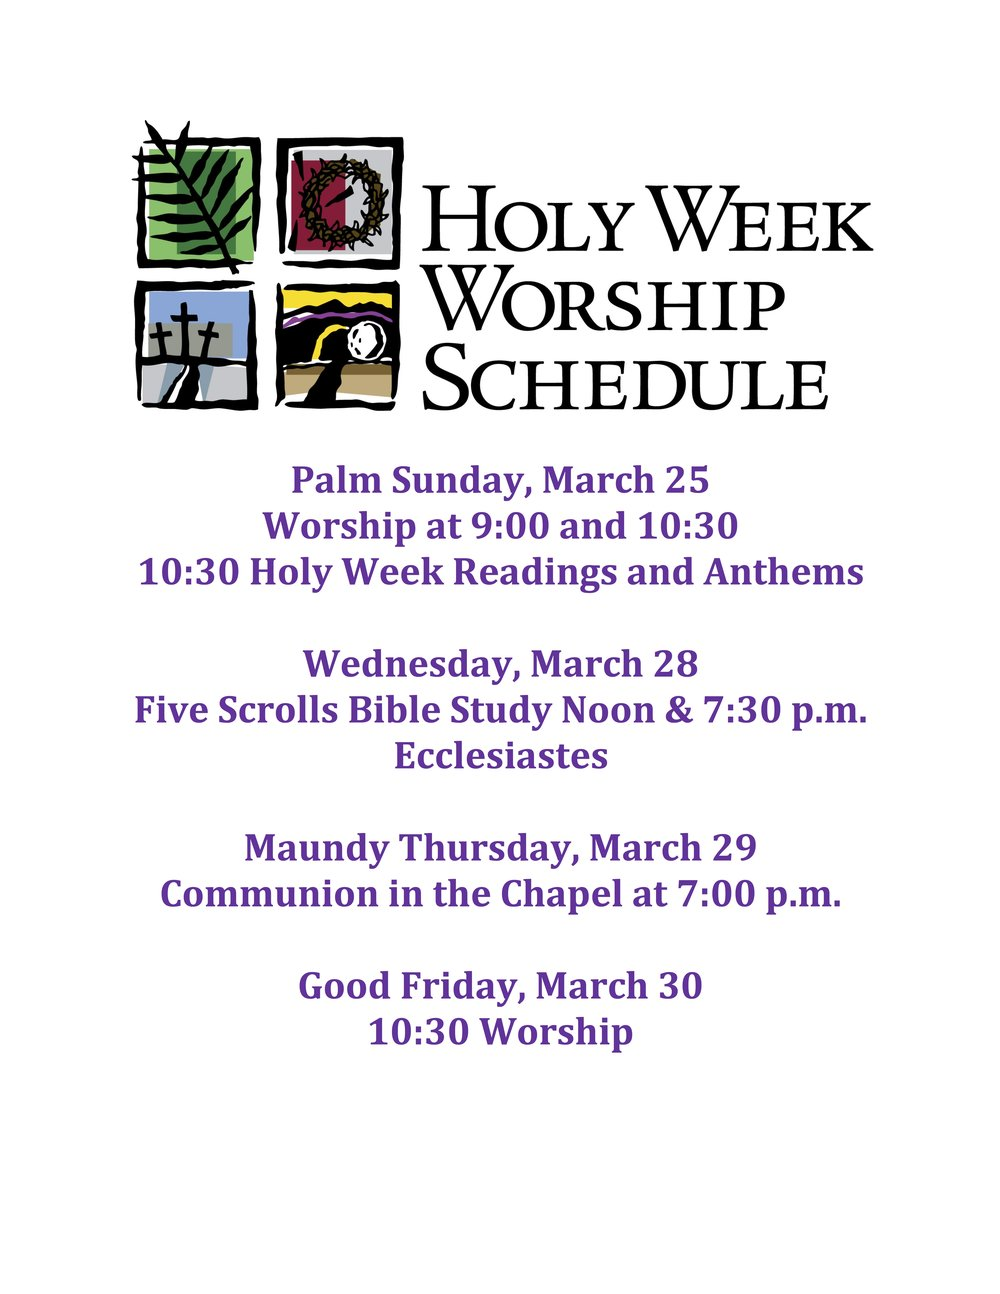 Holy Week Schedule Poster.jpg